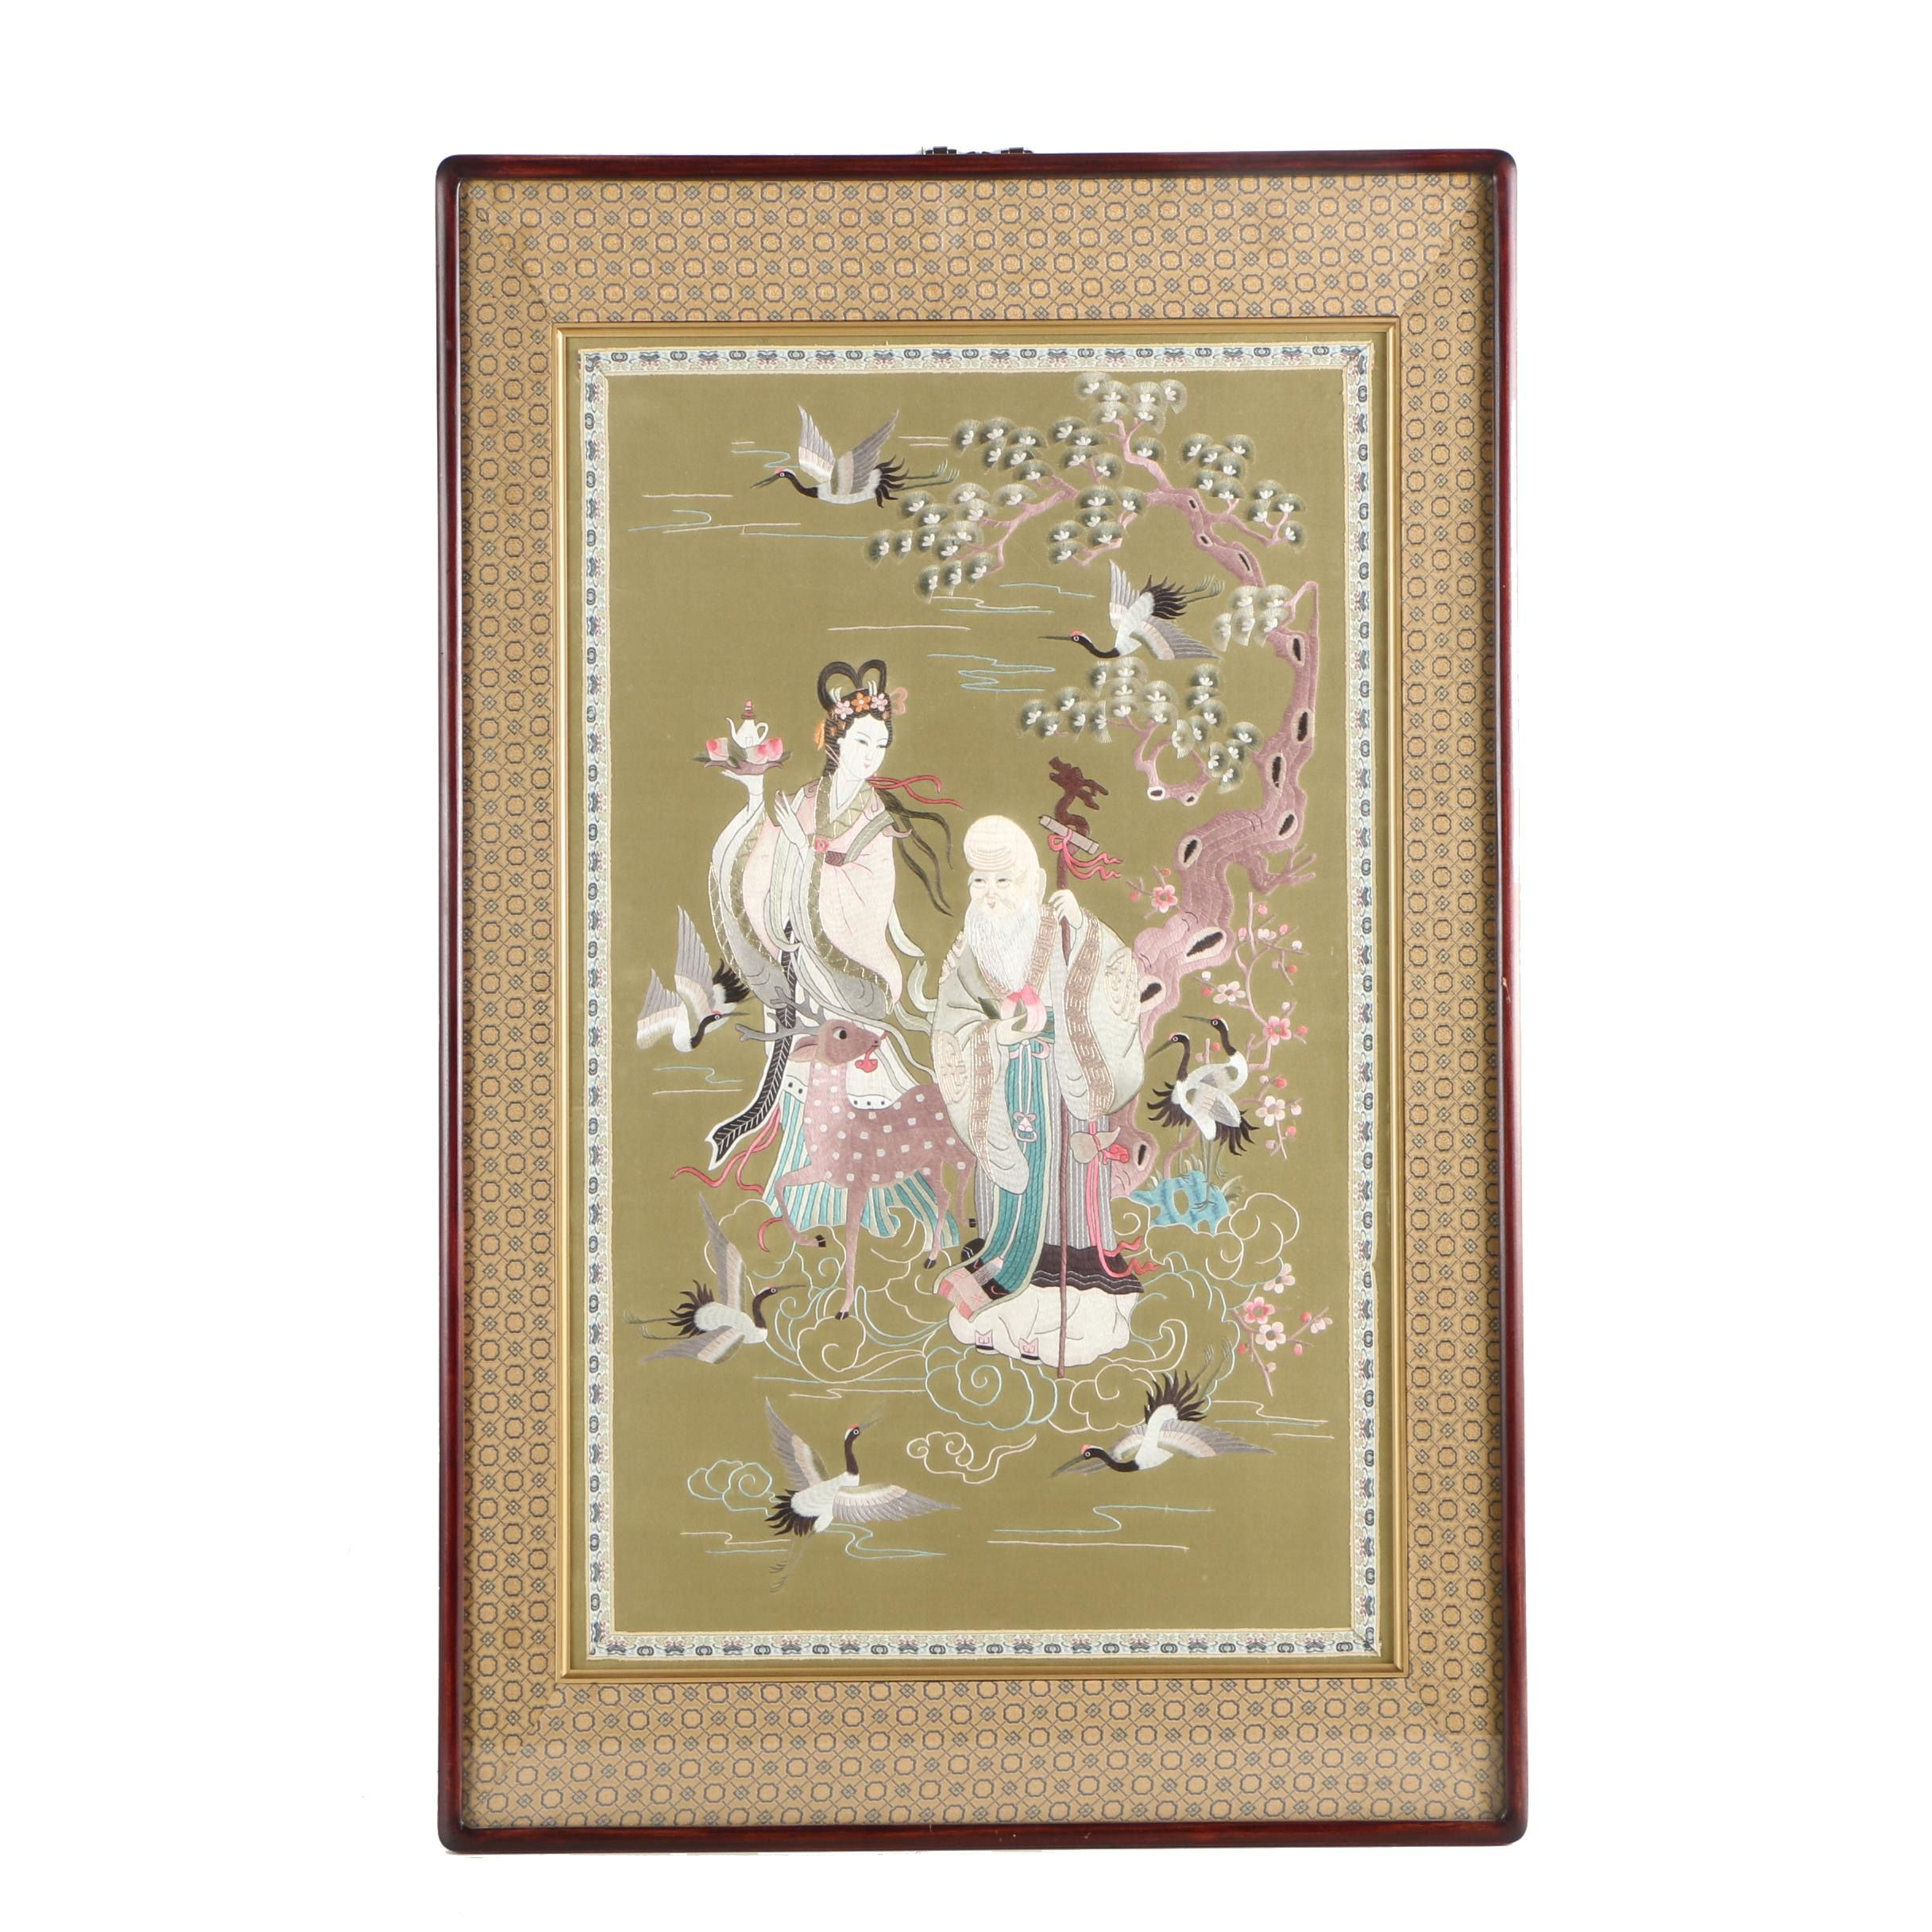 Chinese Embroidery of Magu and Shou